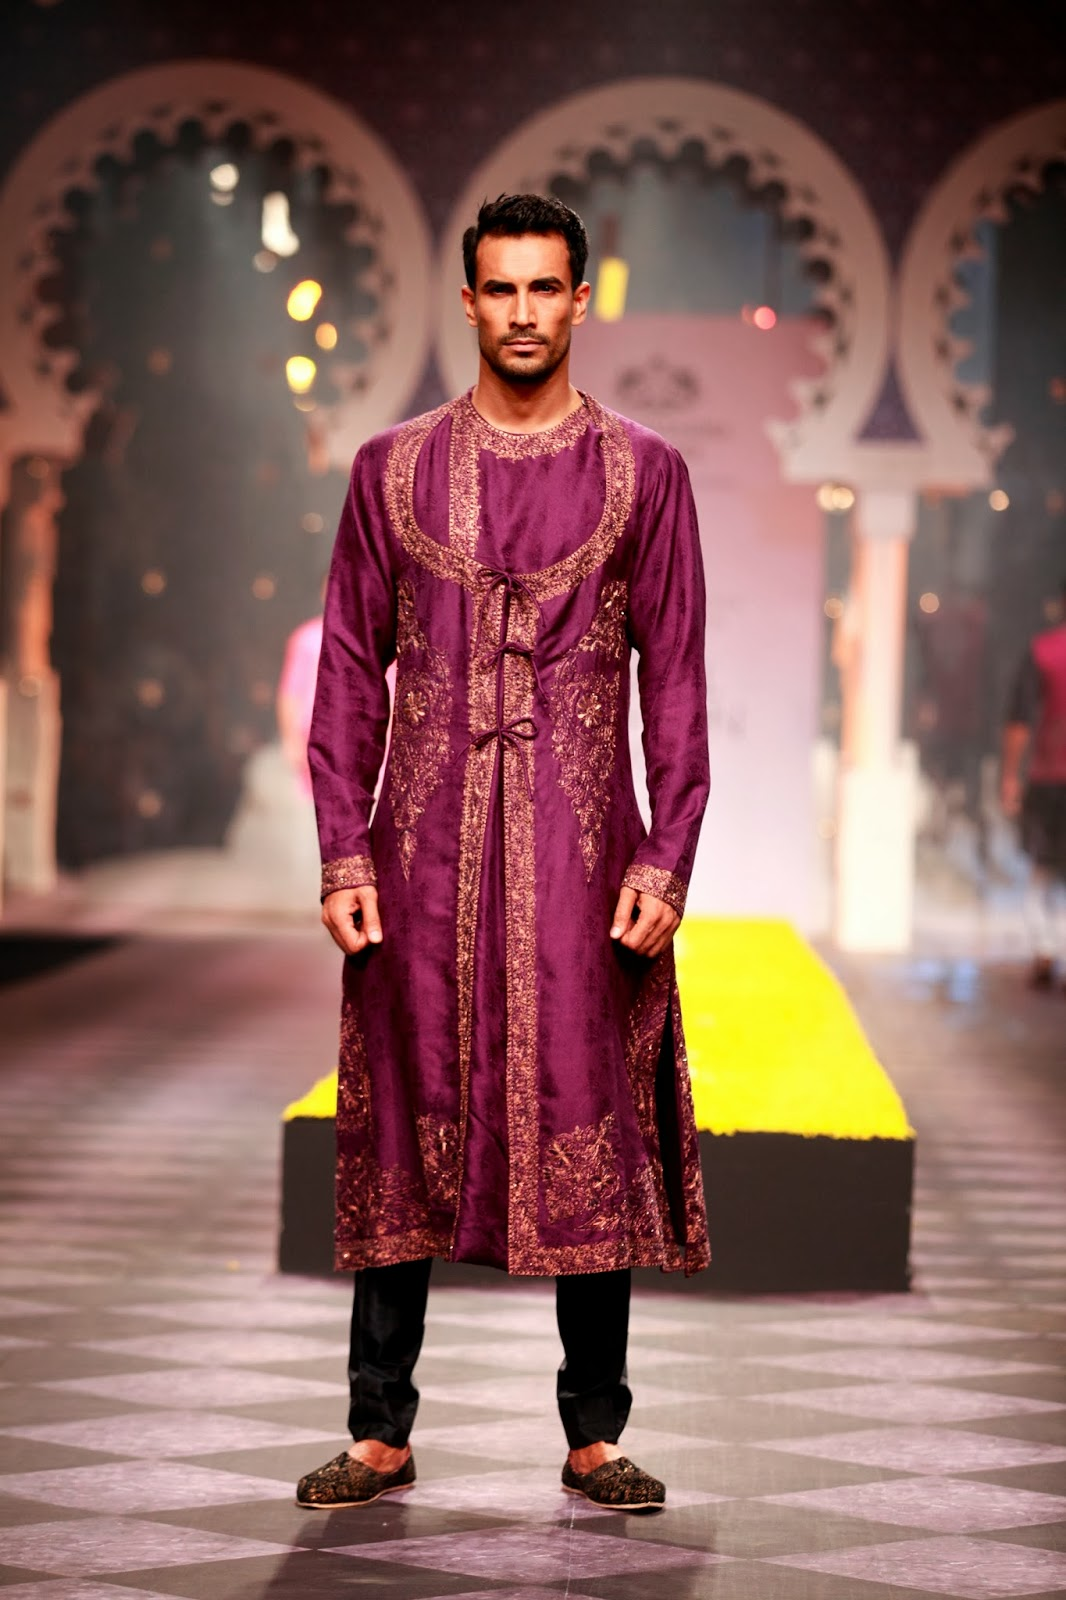 Indian Fashion Churidar Suits Designs Collection 2015 16: Indian Ethnic Designer Fashion Men Women By RAGHAVENDRA